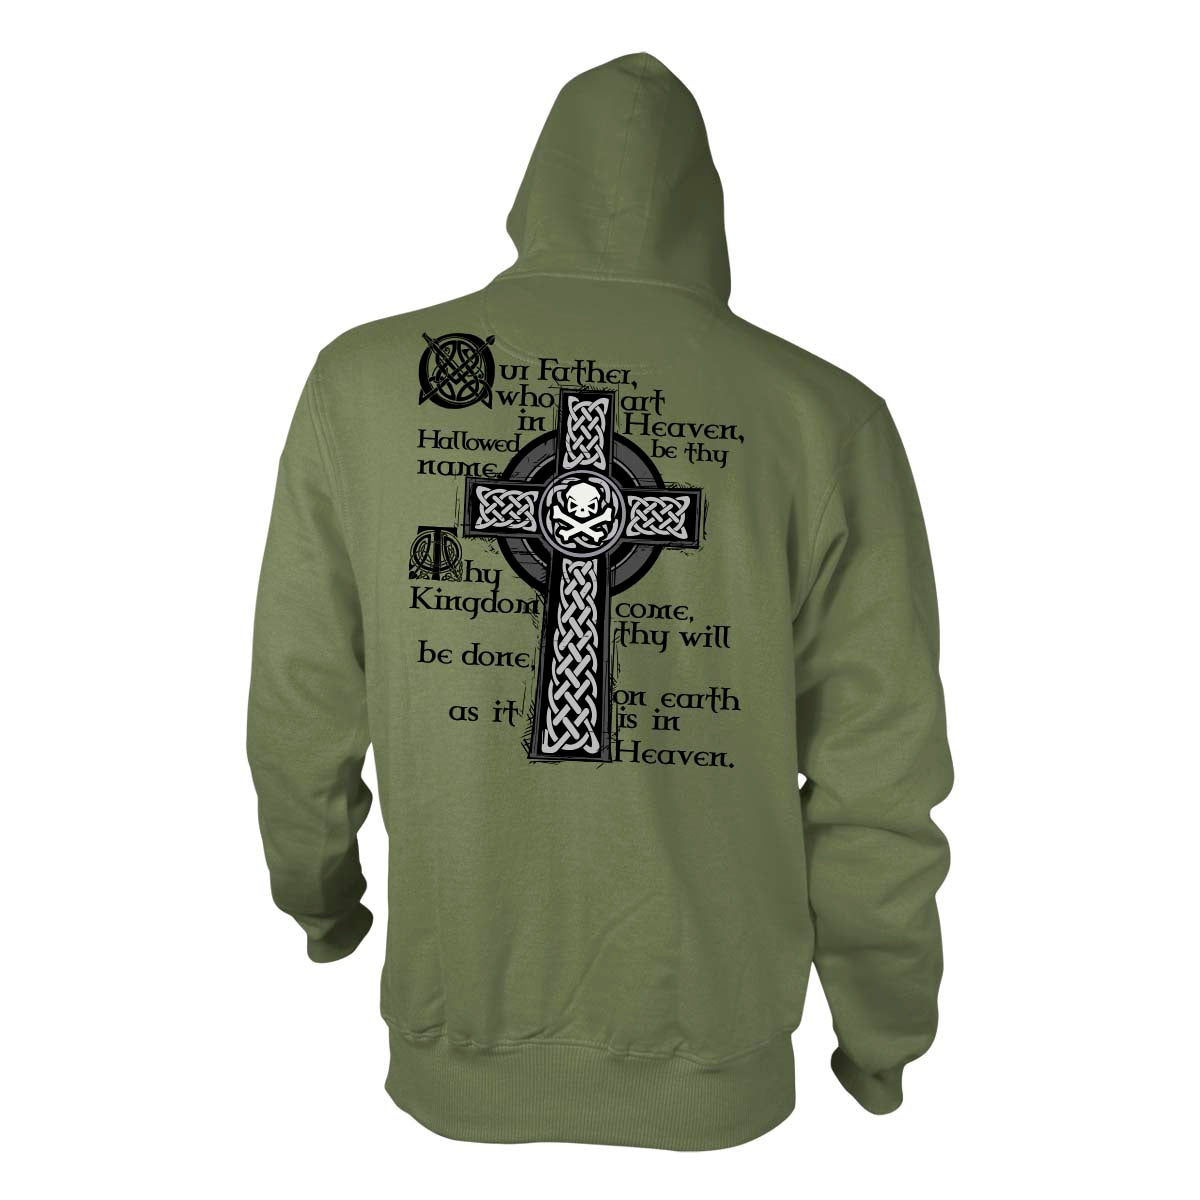 Lord's Prayer - Hoodie - Military Green - T-Shirts - Pipe Hitters Union